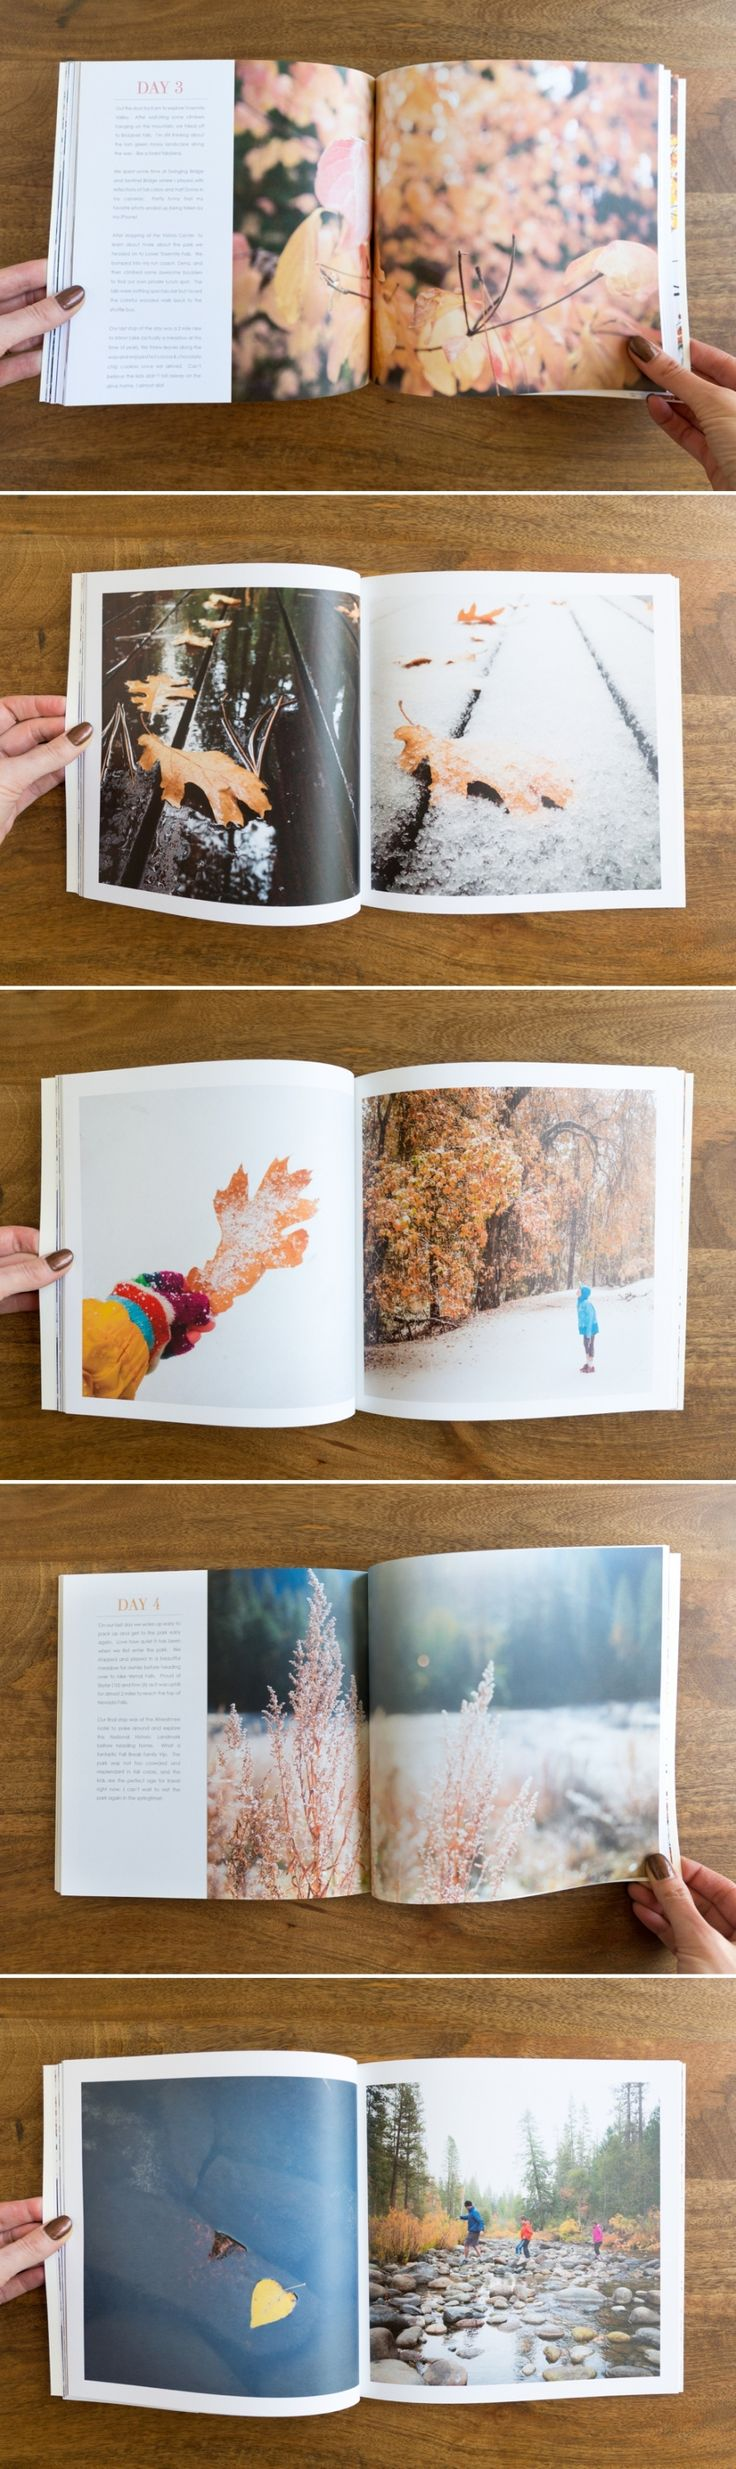 Yosemite Photo Book | suzanneobrienstudio.com